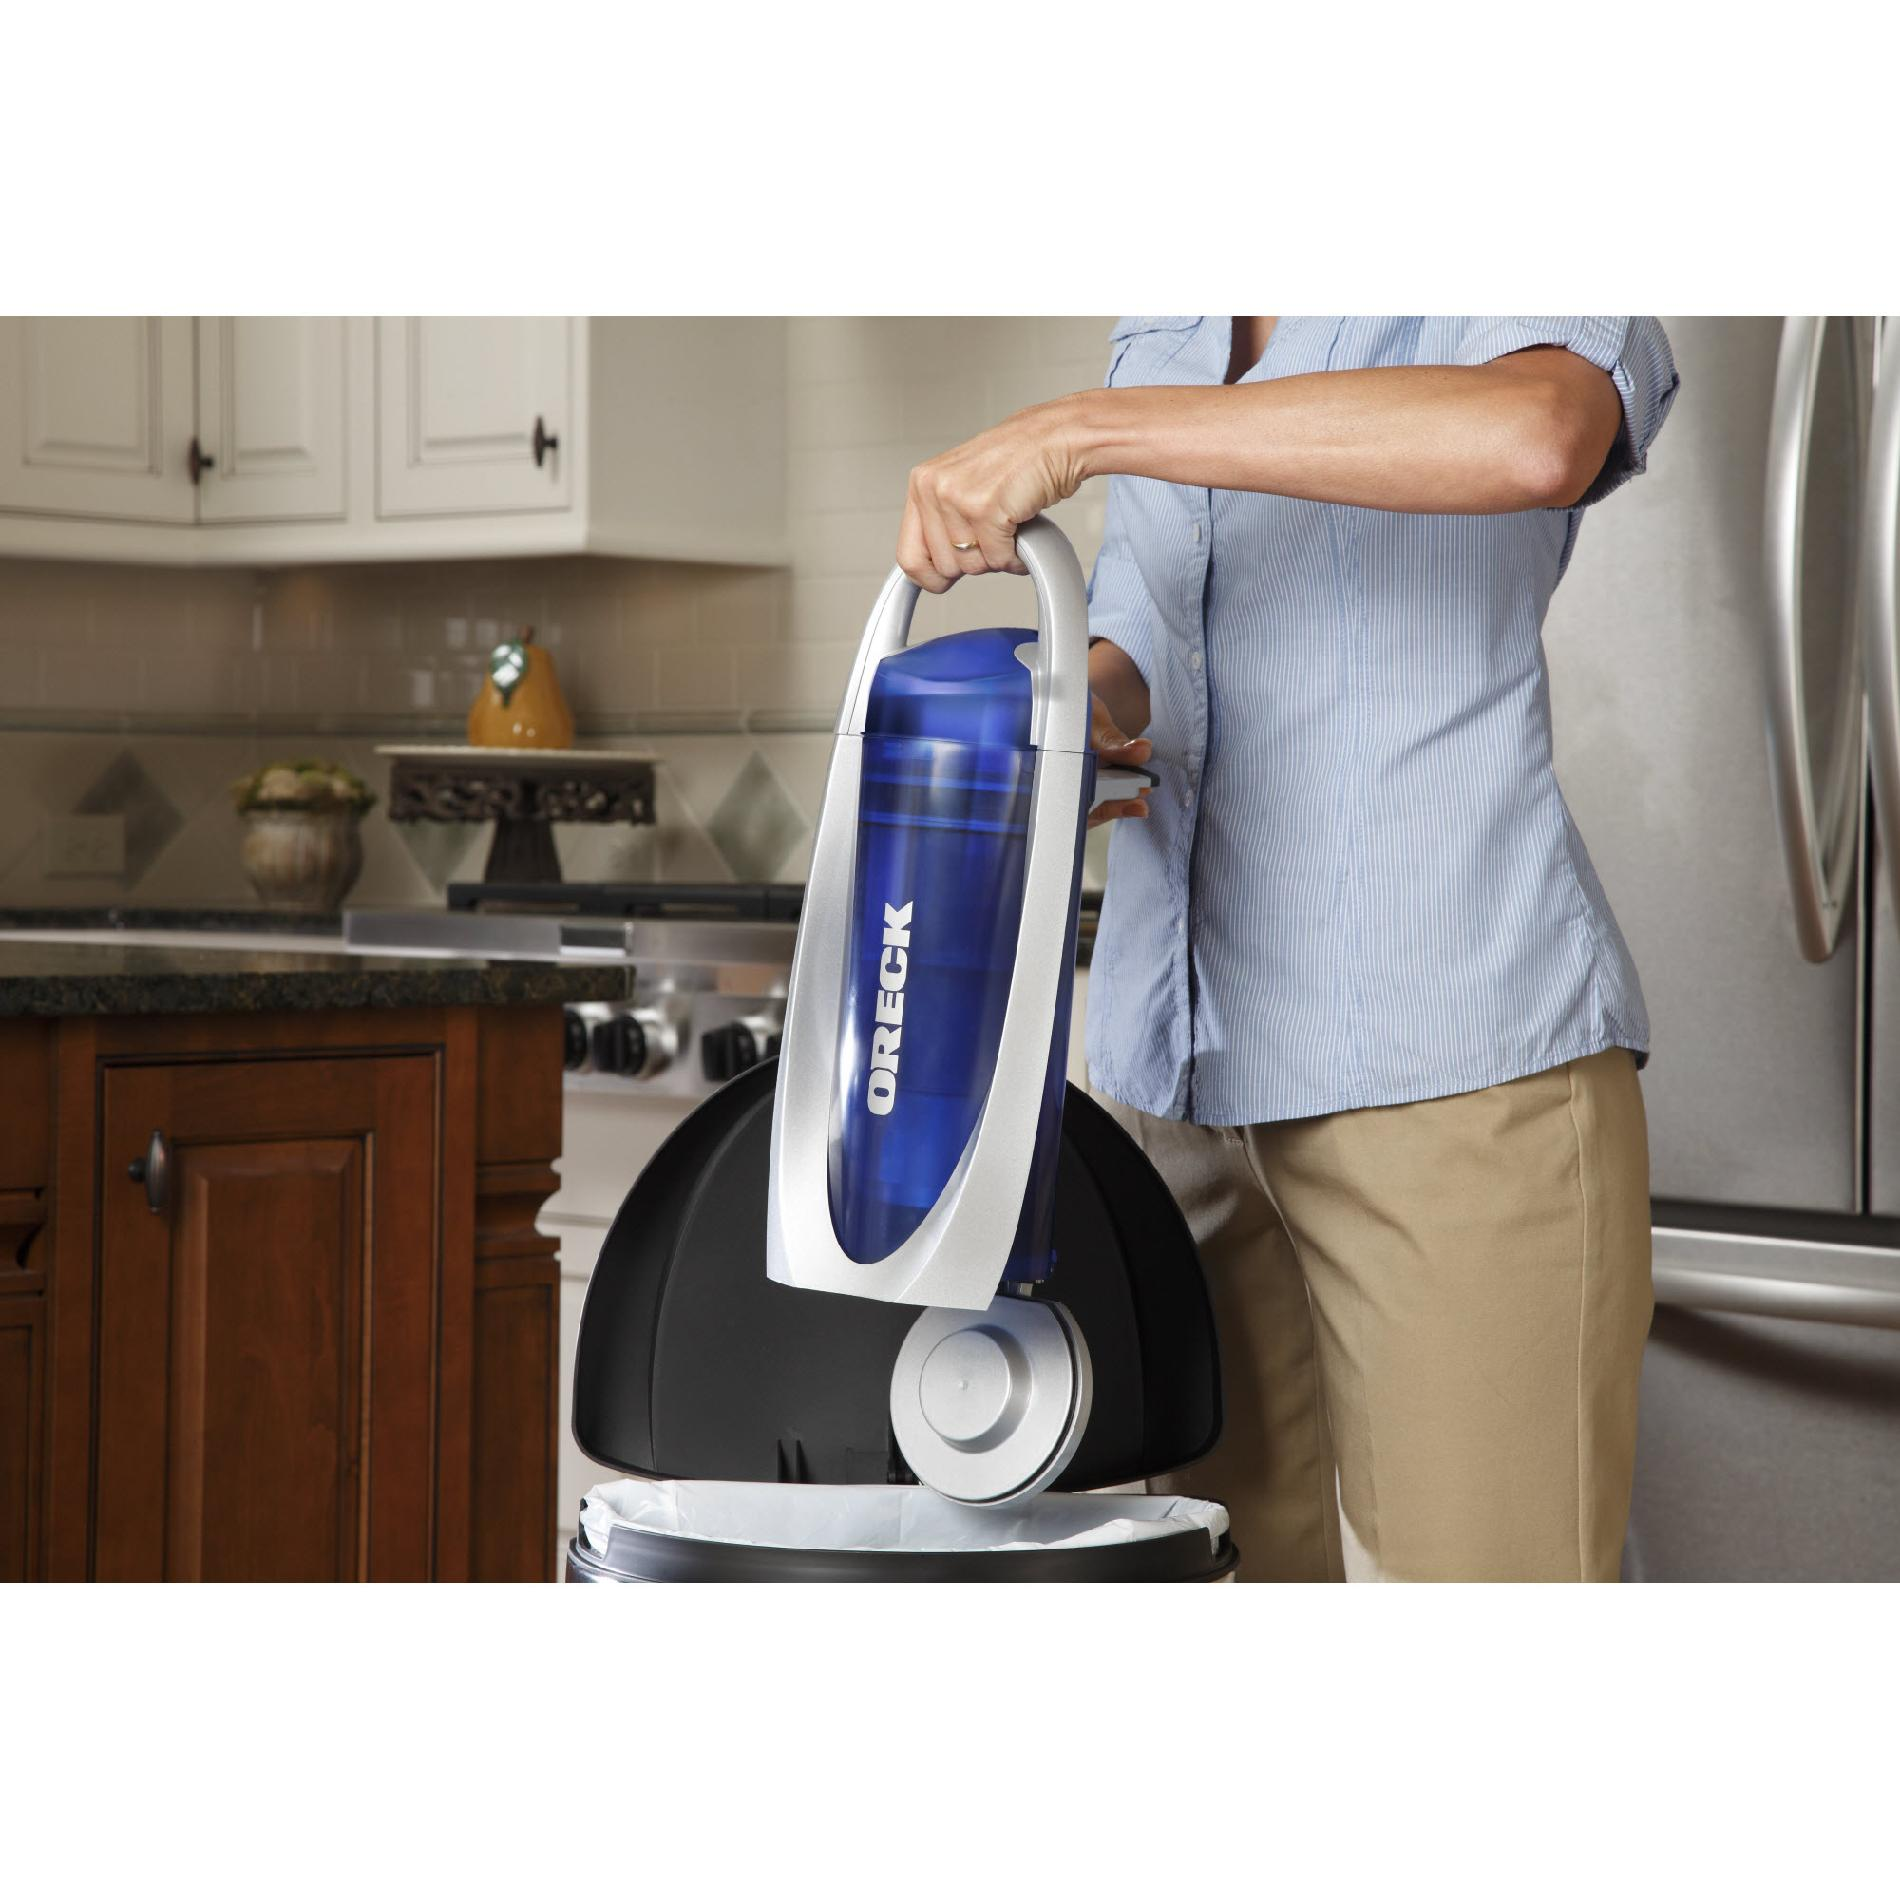 Oreck Touch Bagless Upright Vacuum